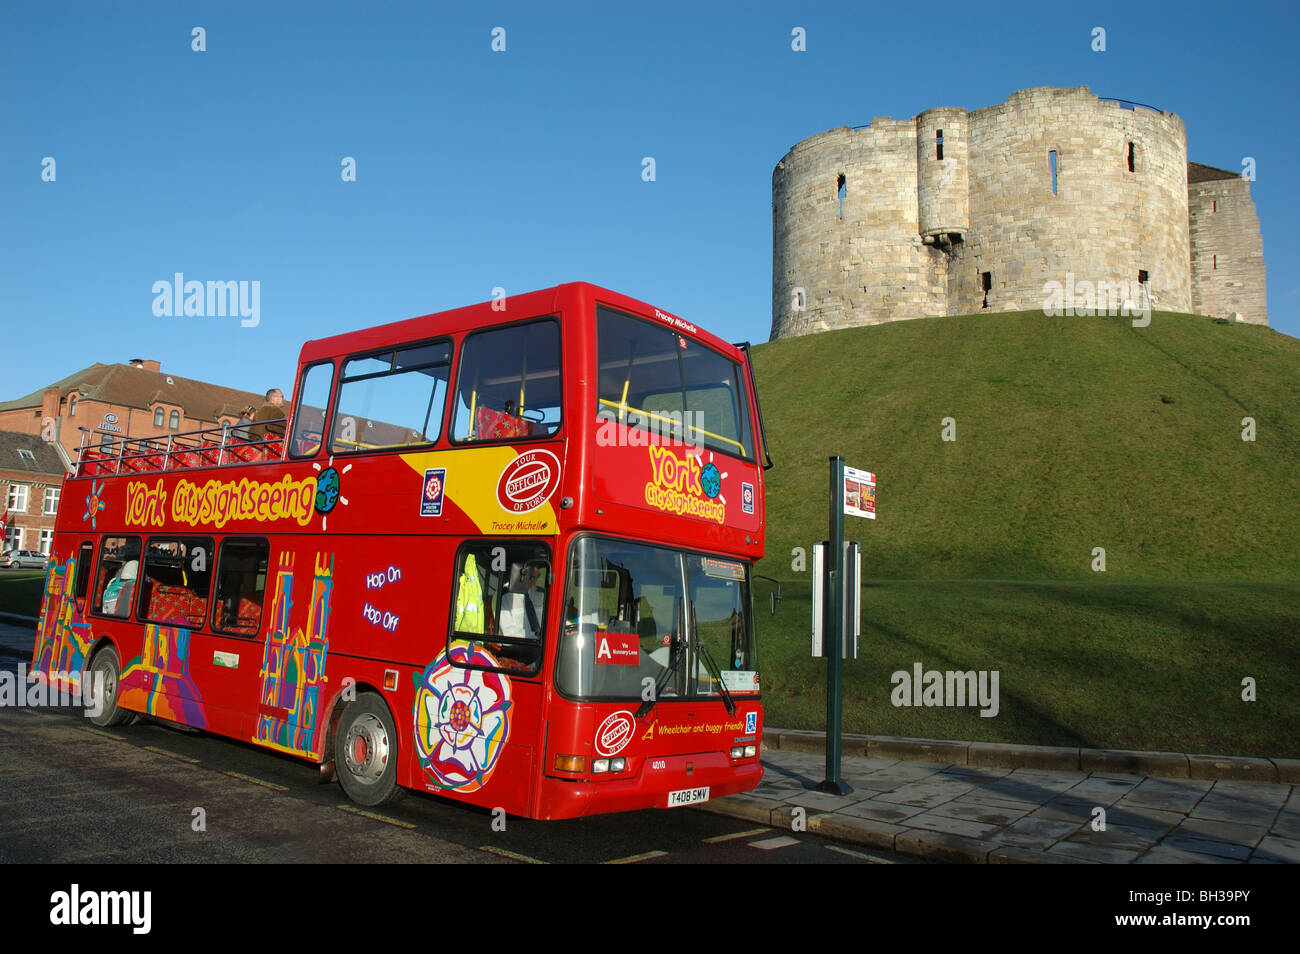 open top sightseeing bus parked at Cliffords Tower, York, England, UK - Stock Image